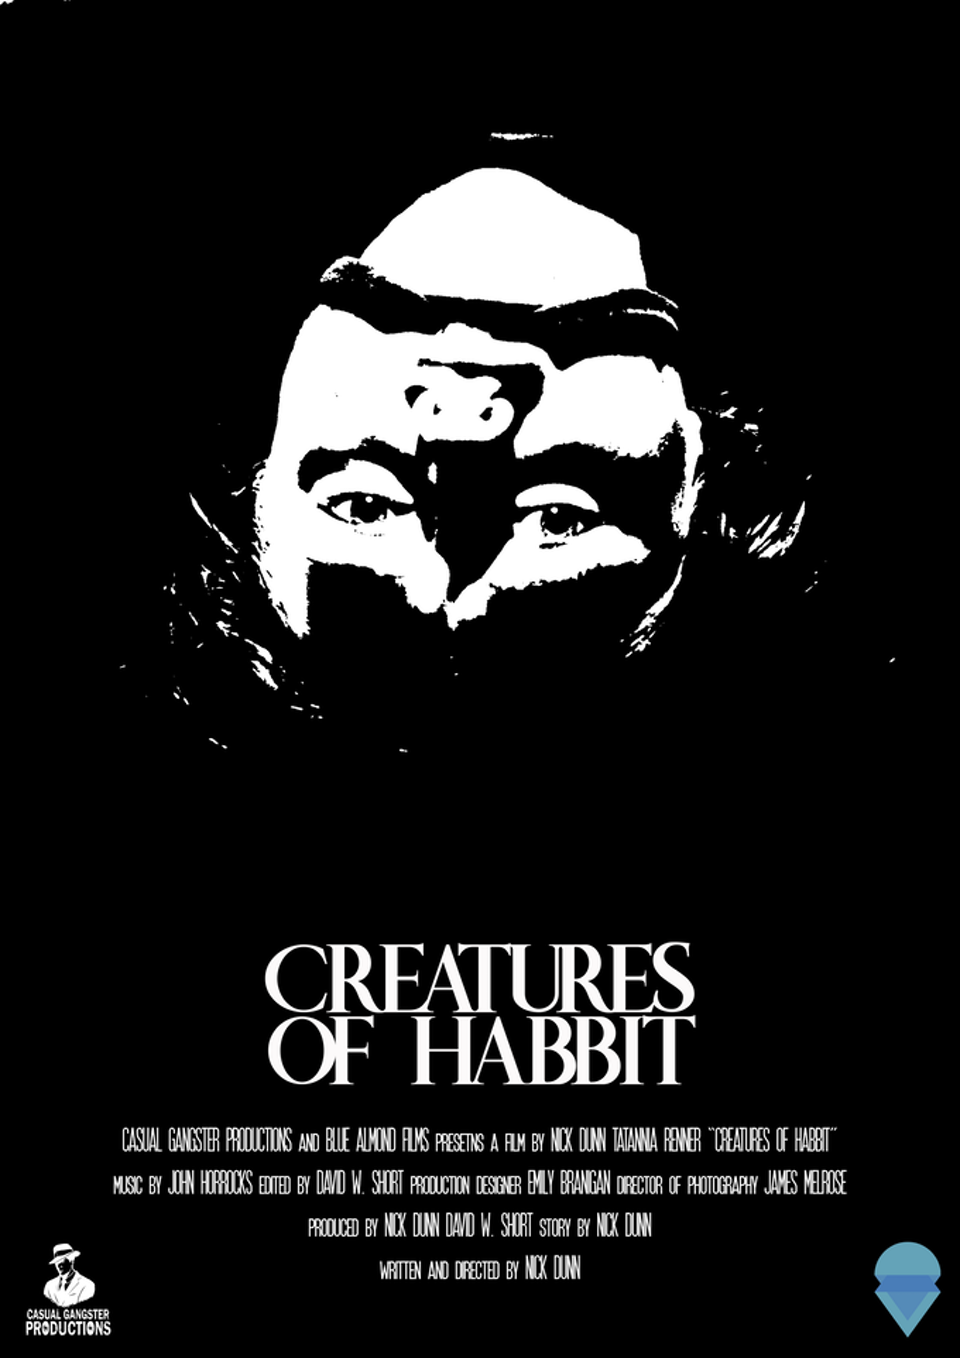 Creature's of Habit Fundraising